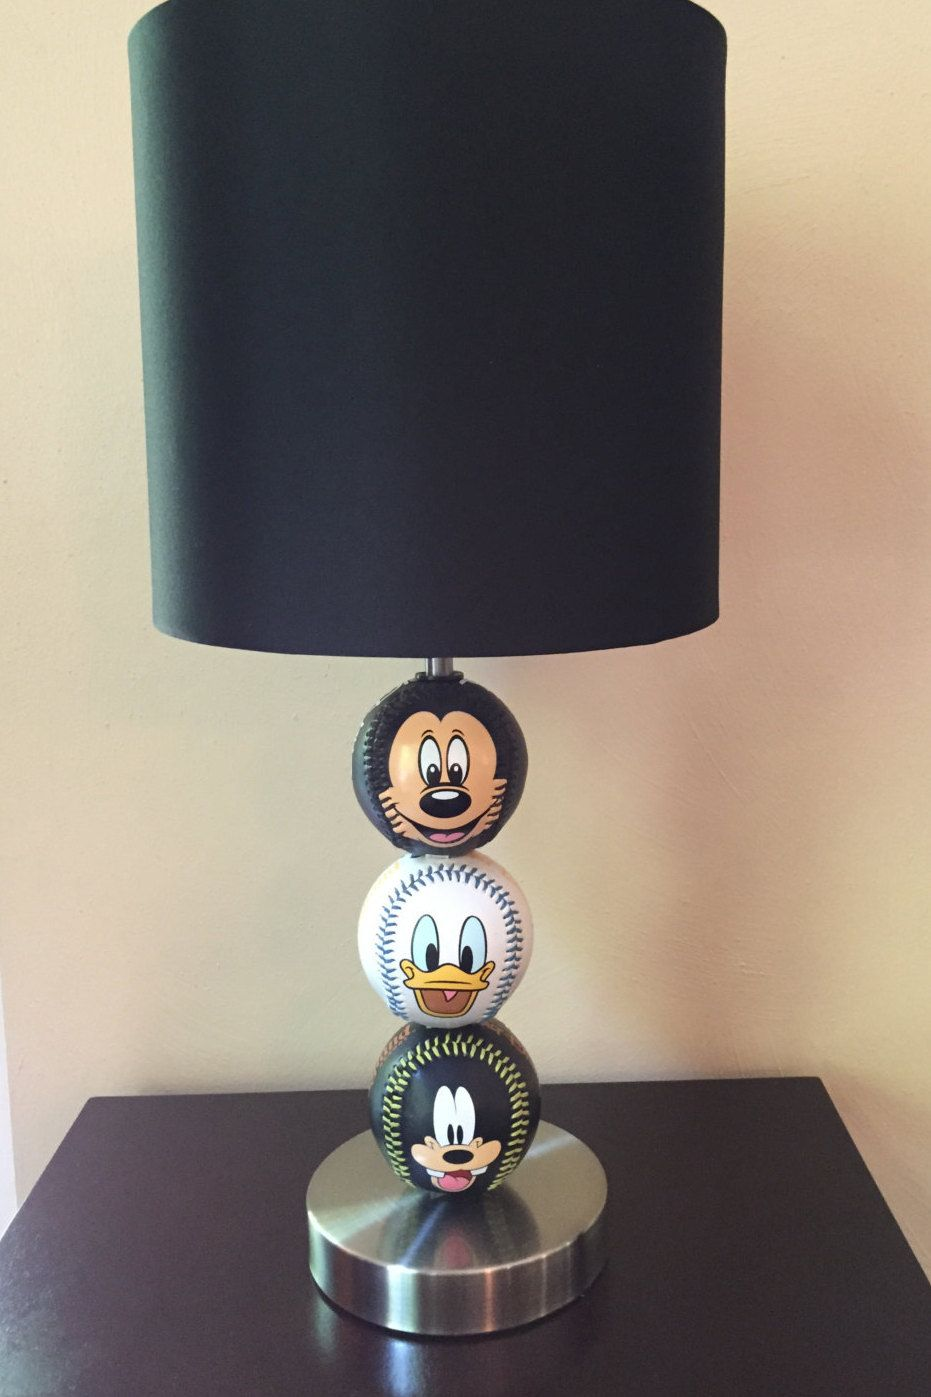 Disney baseball themed table lamp by christyvscreations on etsy disney baseball themed table lamp by christyvscreations on etsy geotapseo Image collections